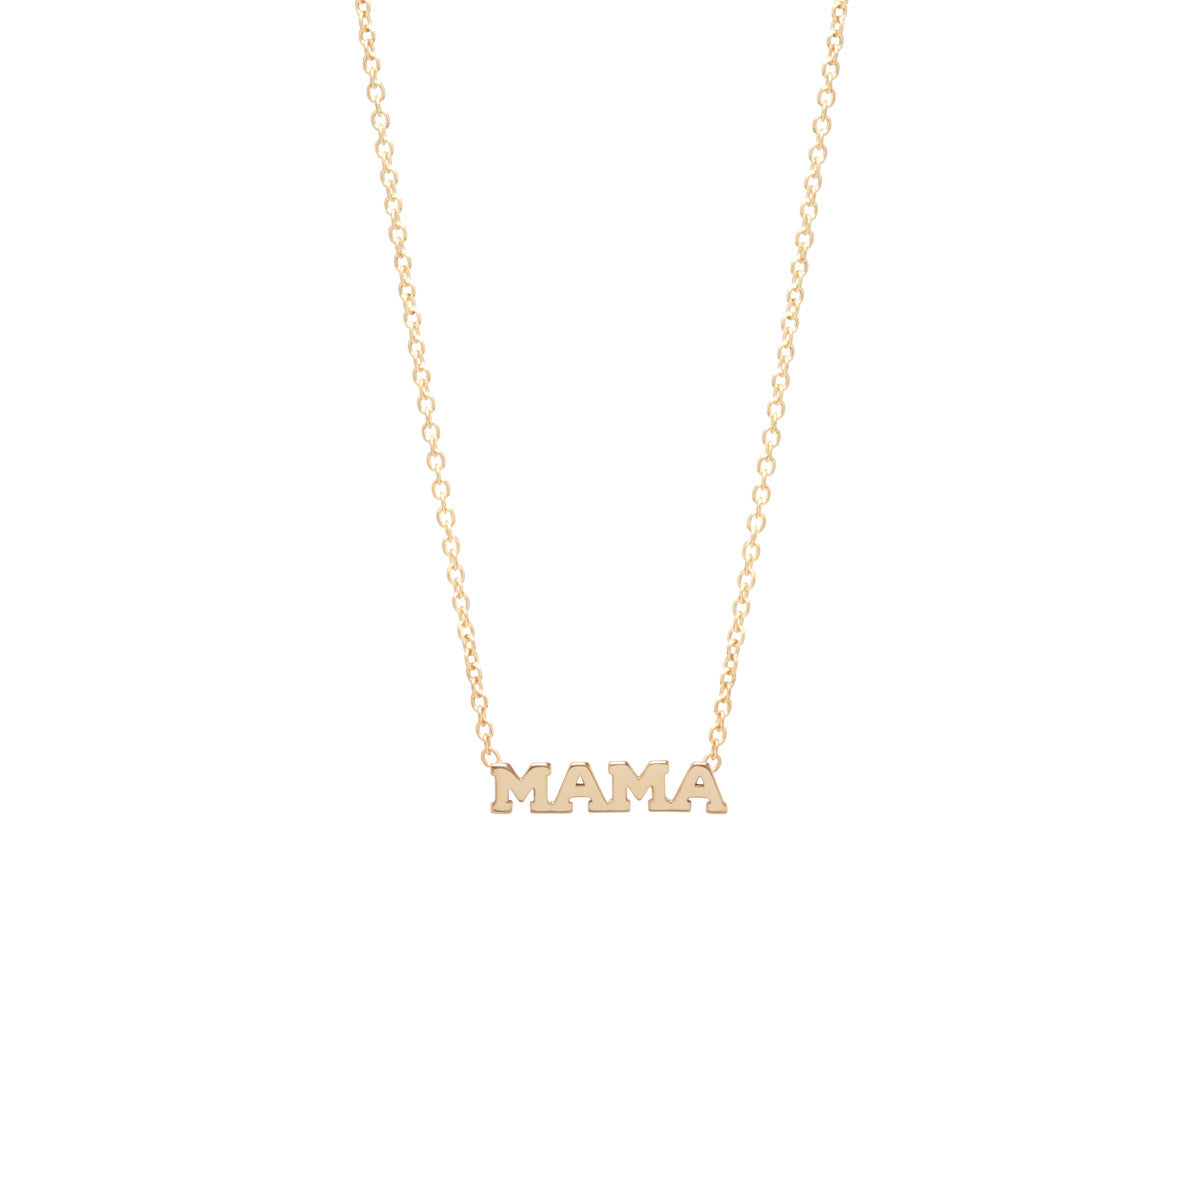 withloved necklace products mama